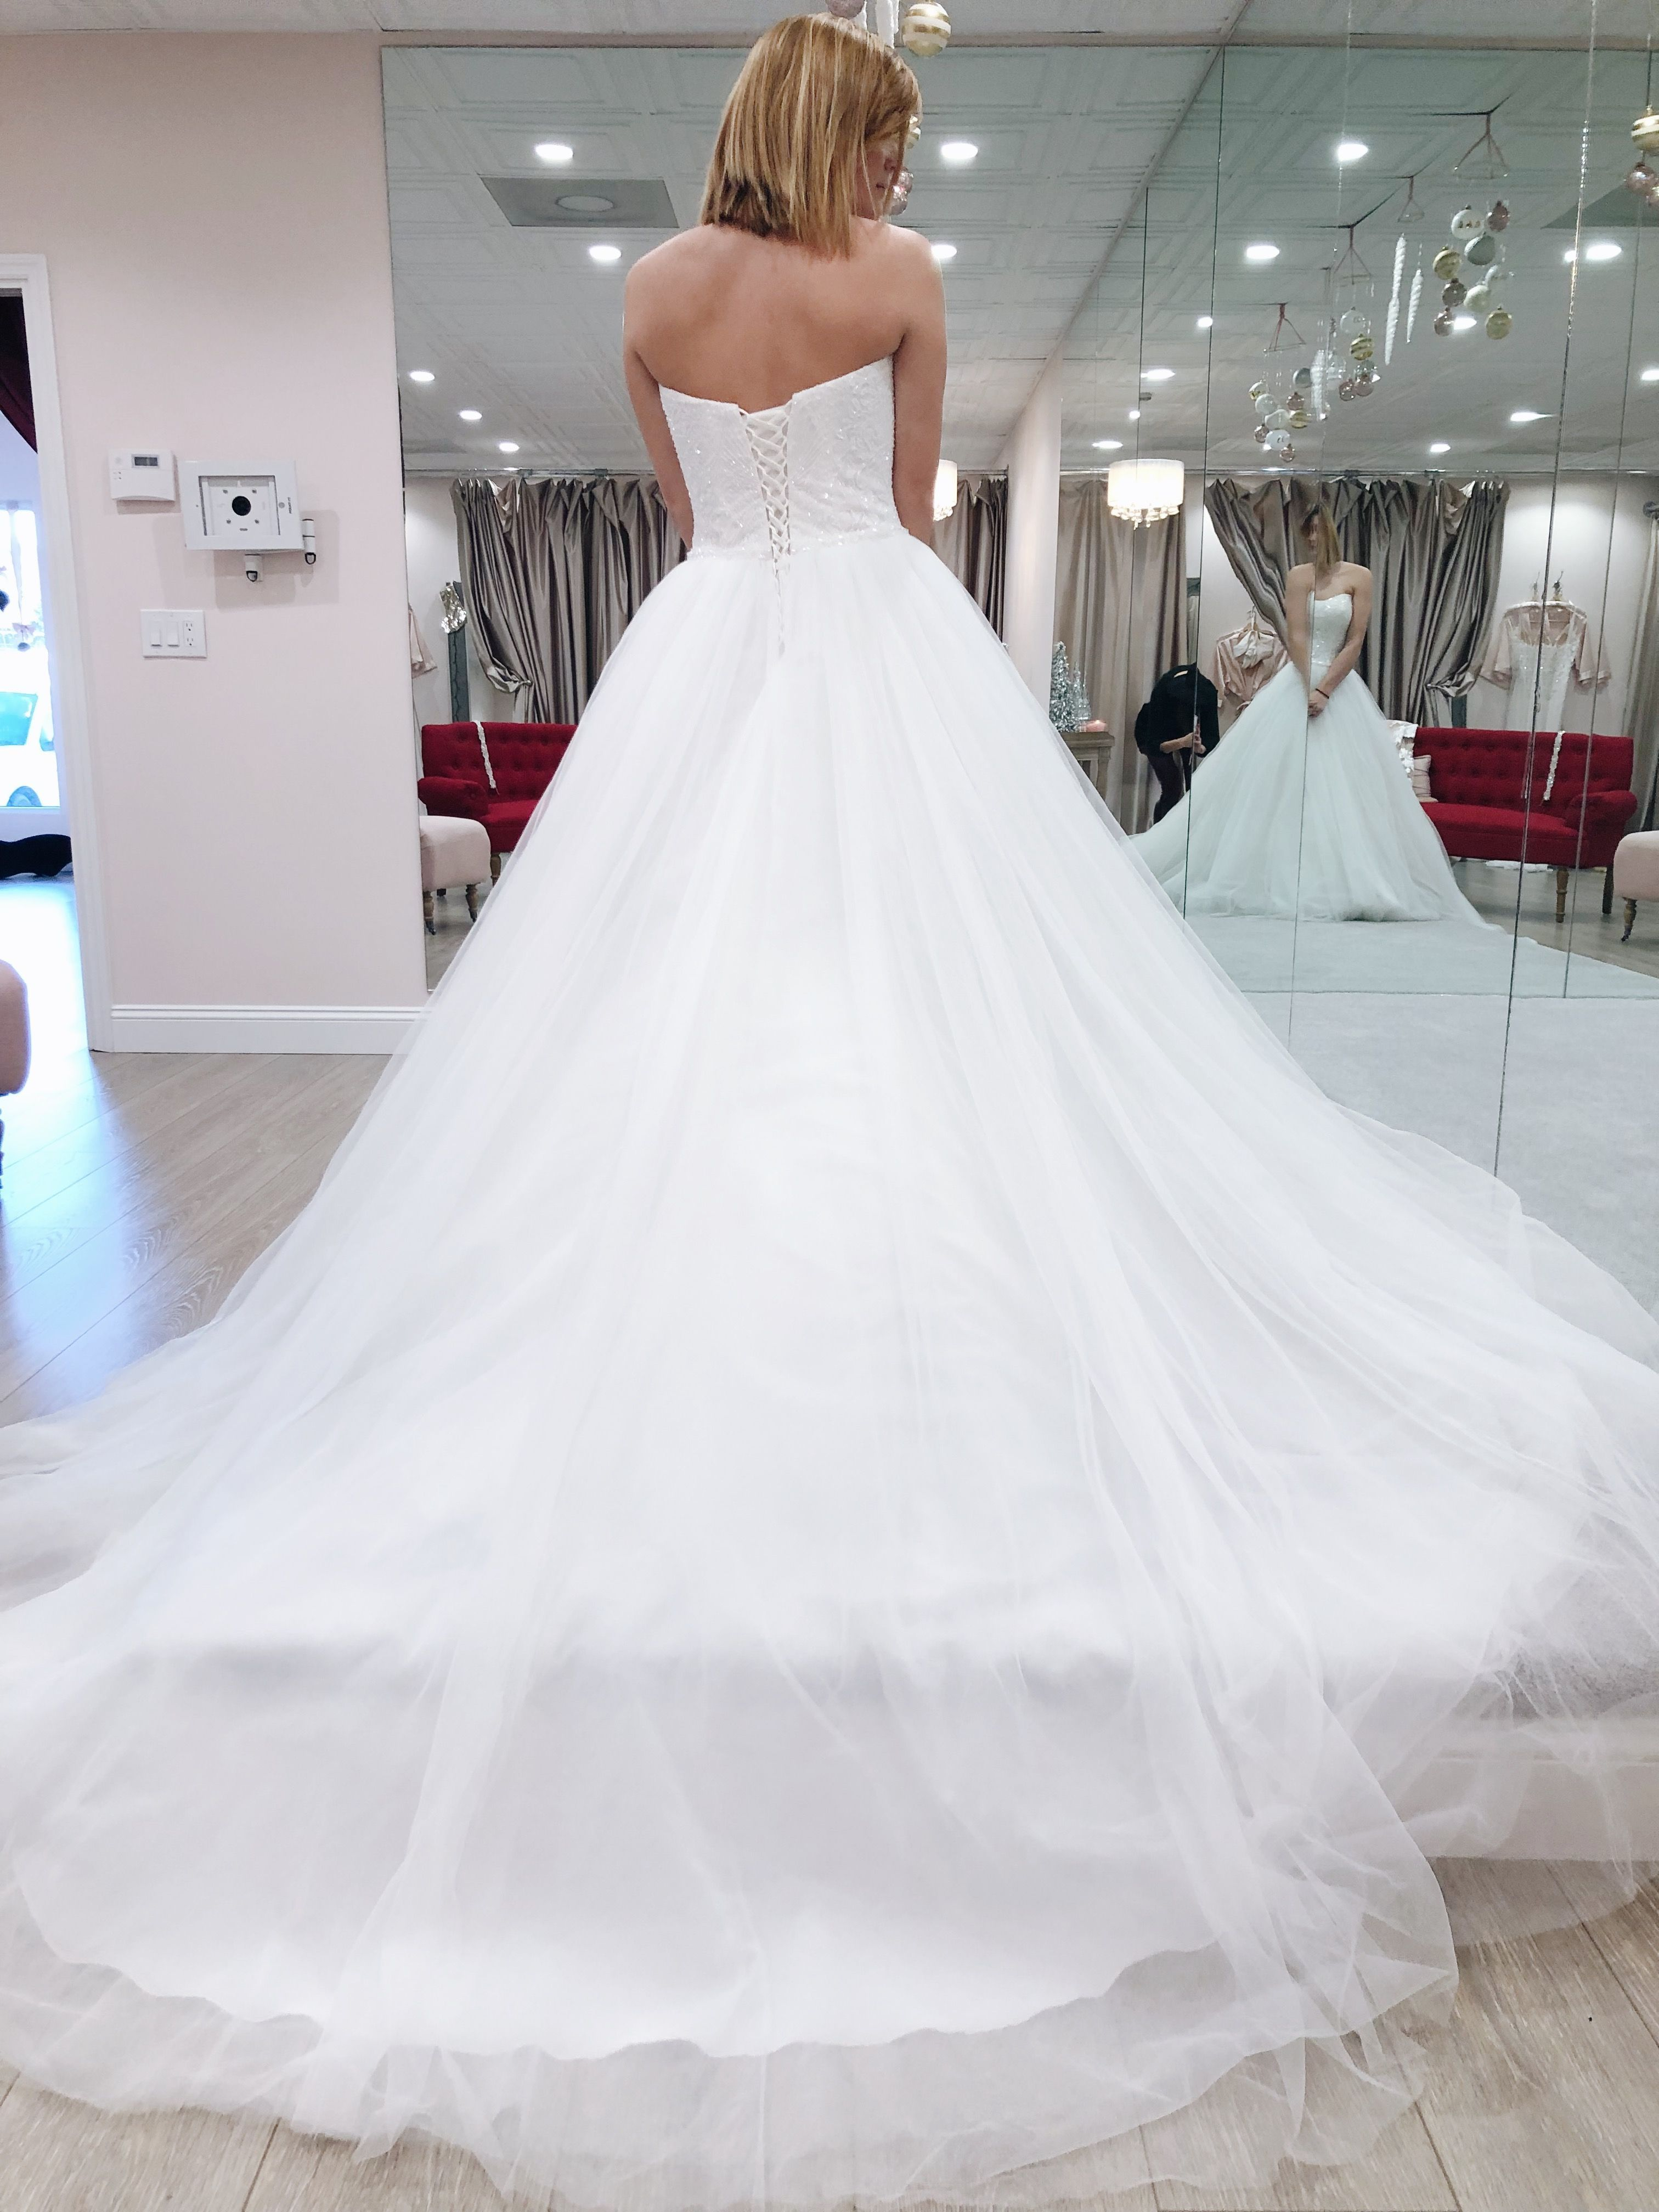 The Perfect Cinderella Wedding Dress With Soft Tulle And A Corset Back If Your Re A Br Wedding Dresses Cinderella Sophia Tolli Wedding Dresses Wedding Dresses